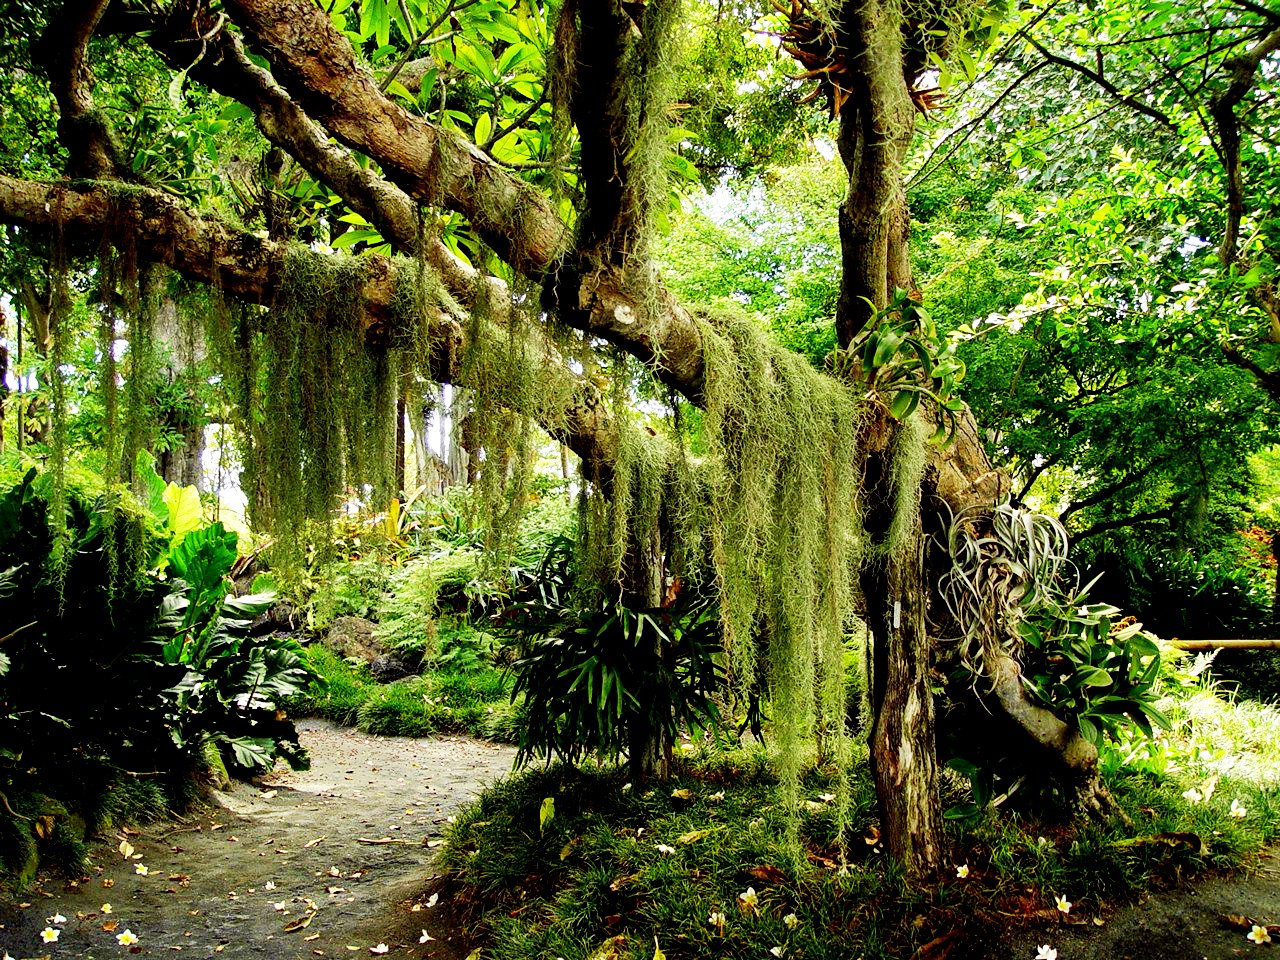 Tropical rainforest plants tropical rainforest plants grow in more